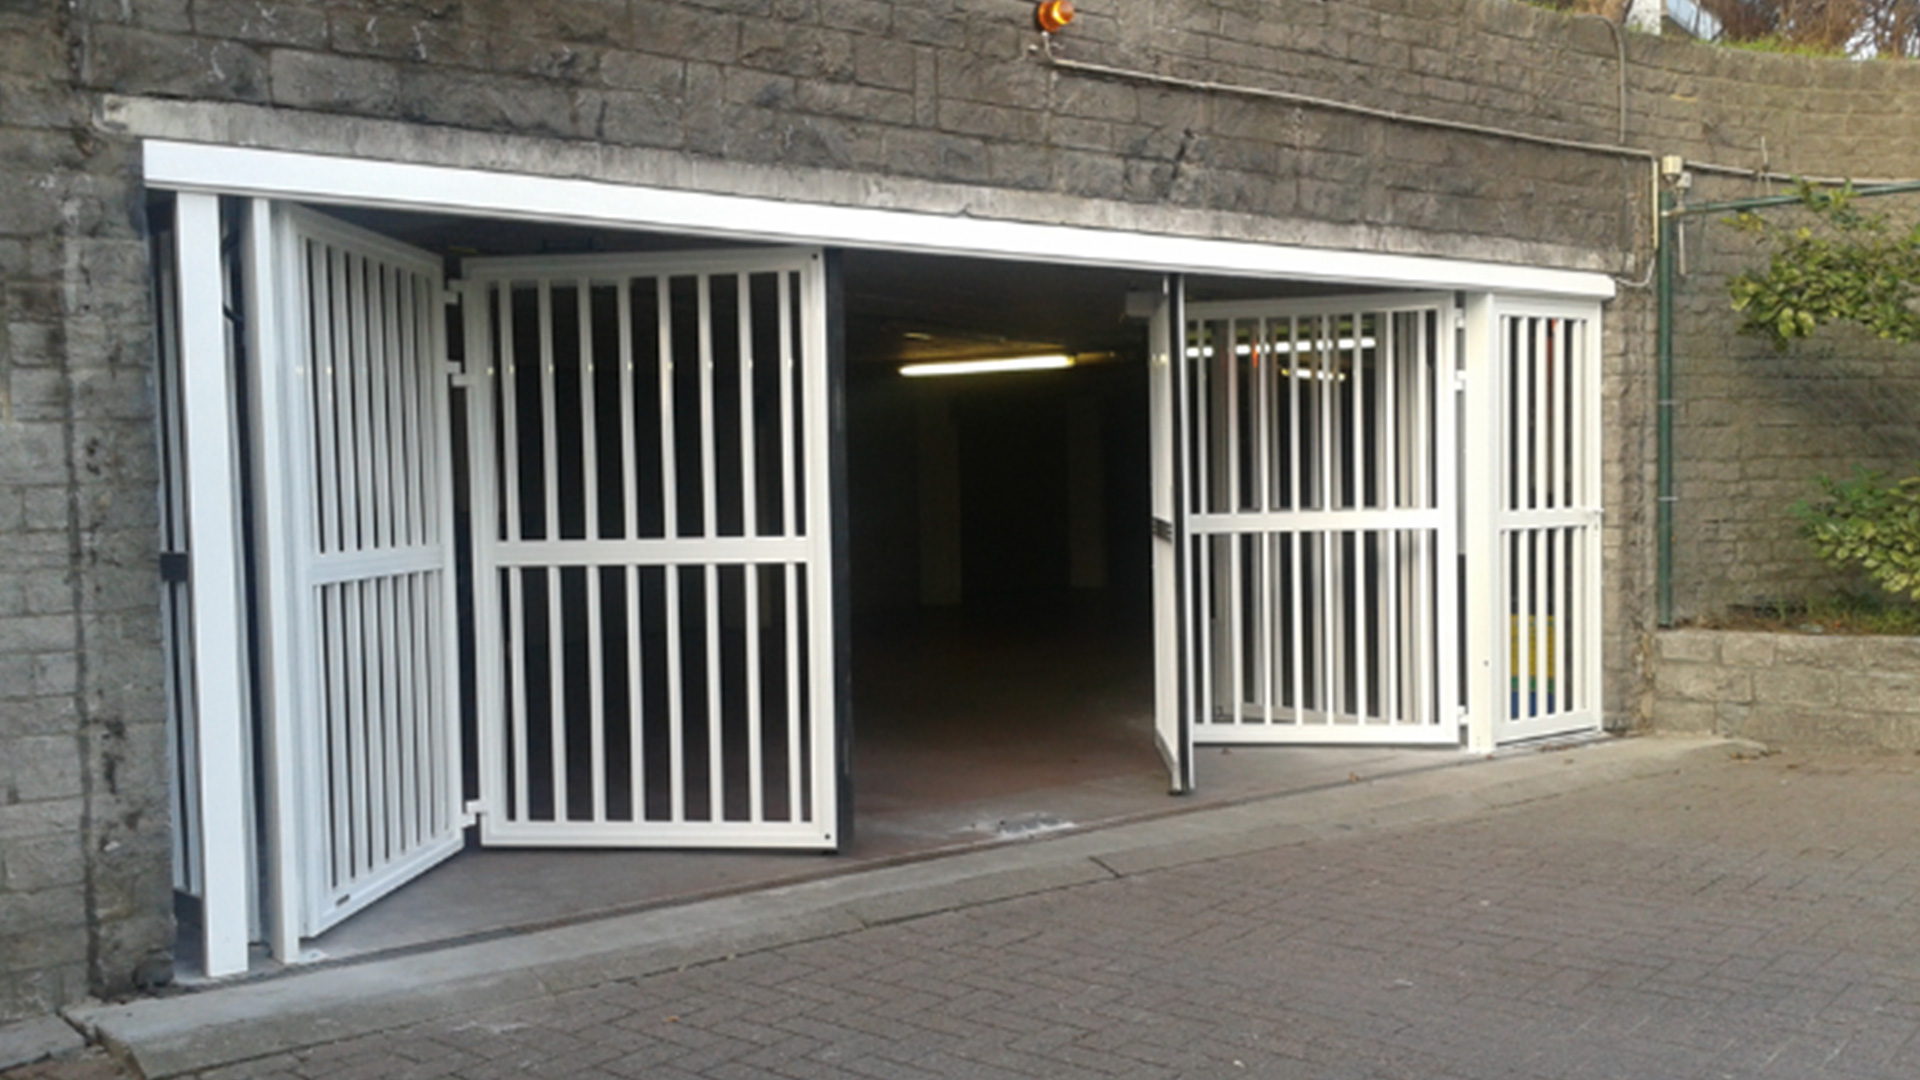 Porte ouverture lat rale pour un usage intensif all access for Porte garage ouverture laterale